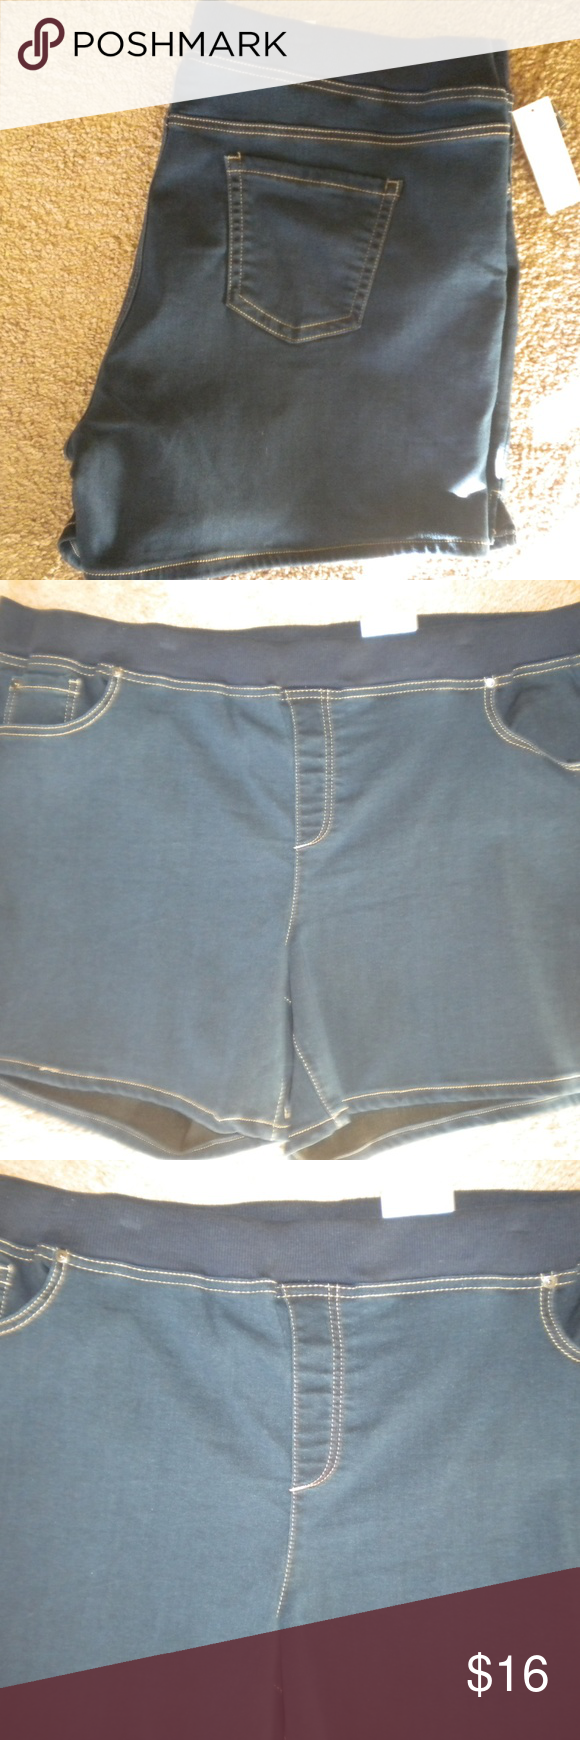 895be8ff003f8 Terra Sky Women Plus Size 20W 22W (2X) Jean Shorts. Elastic Waistband. Five  pockets. Dark wash. Stretch. Comfort Waist band. Pull On. Soft.